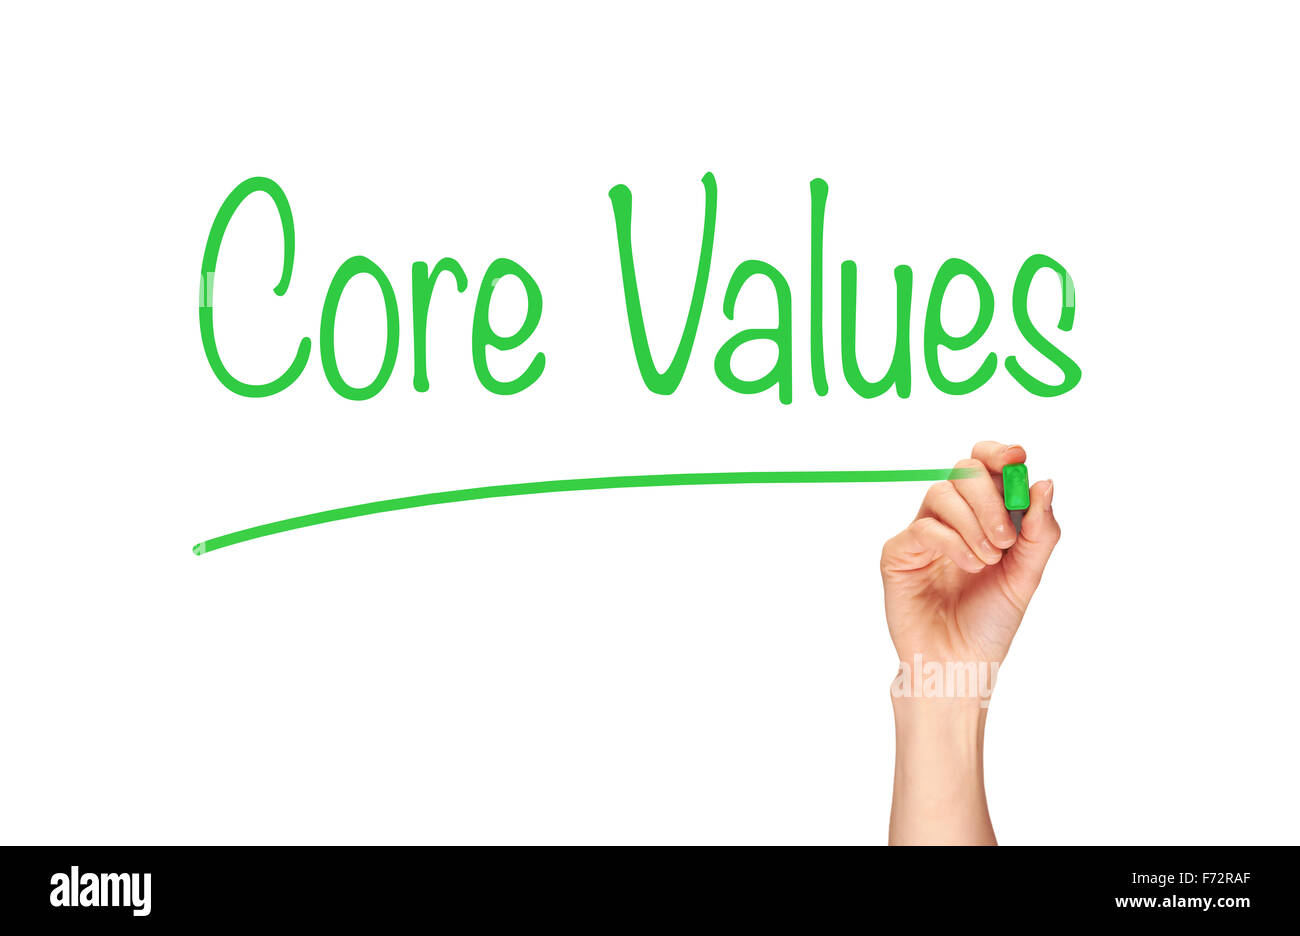 A woman's hand writing the word, Core Values, on a clear screen. - Stock Image